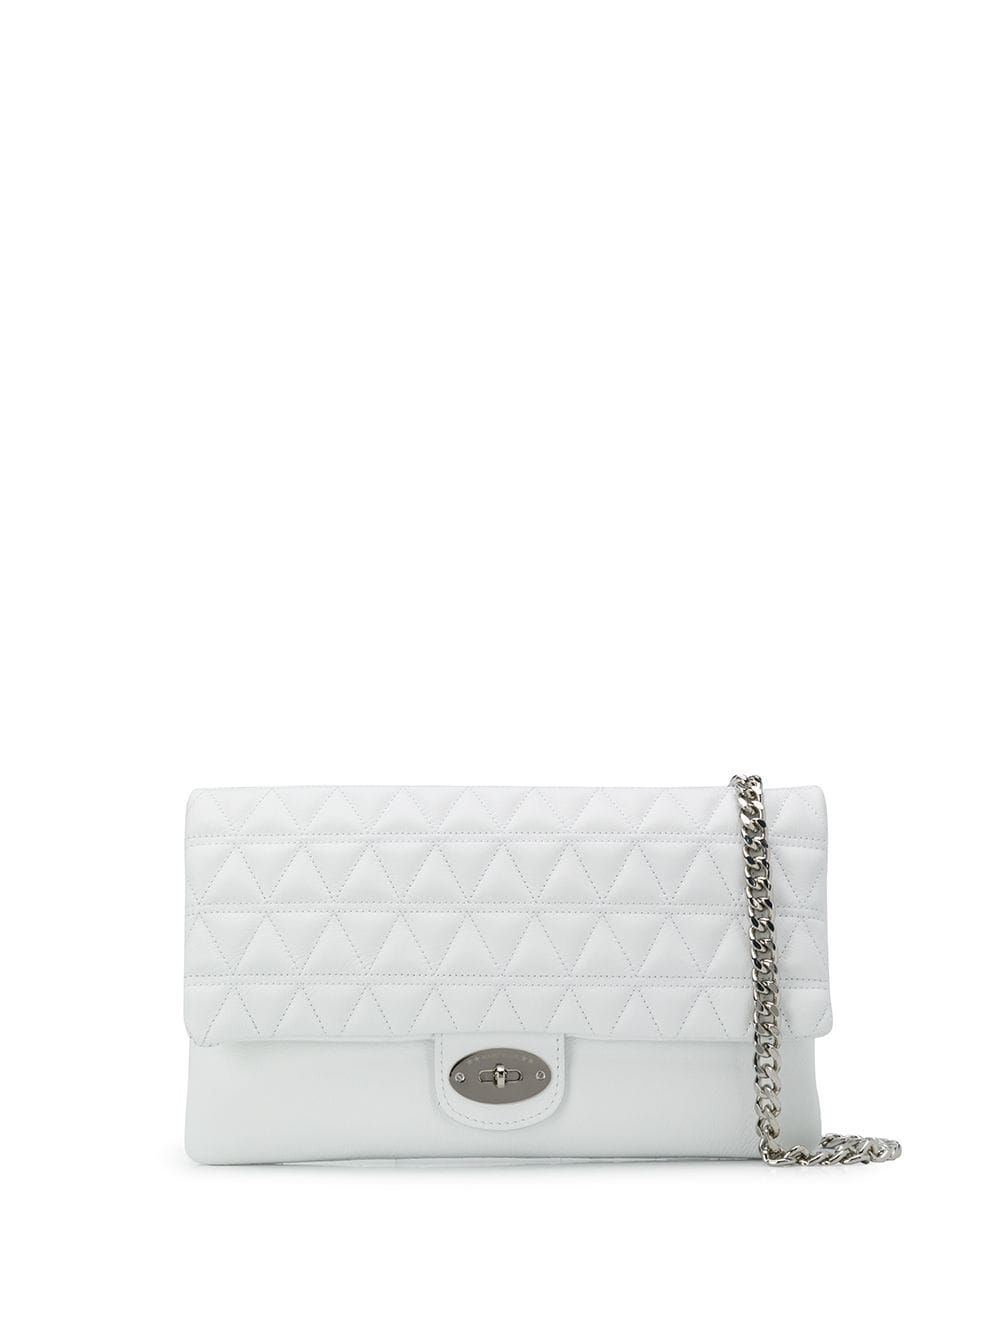 9bb40f576f54 MARC ELLIS MARC ELLIS MAYA CROSS BODY BAG - WHITE.  marcellis  bags   shoulder bags  leather